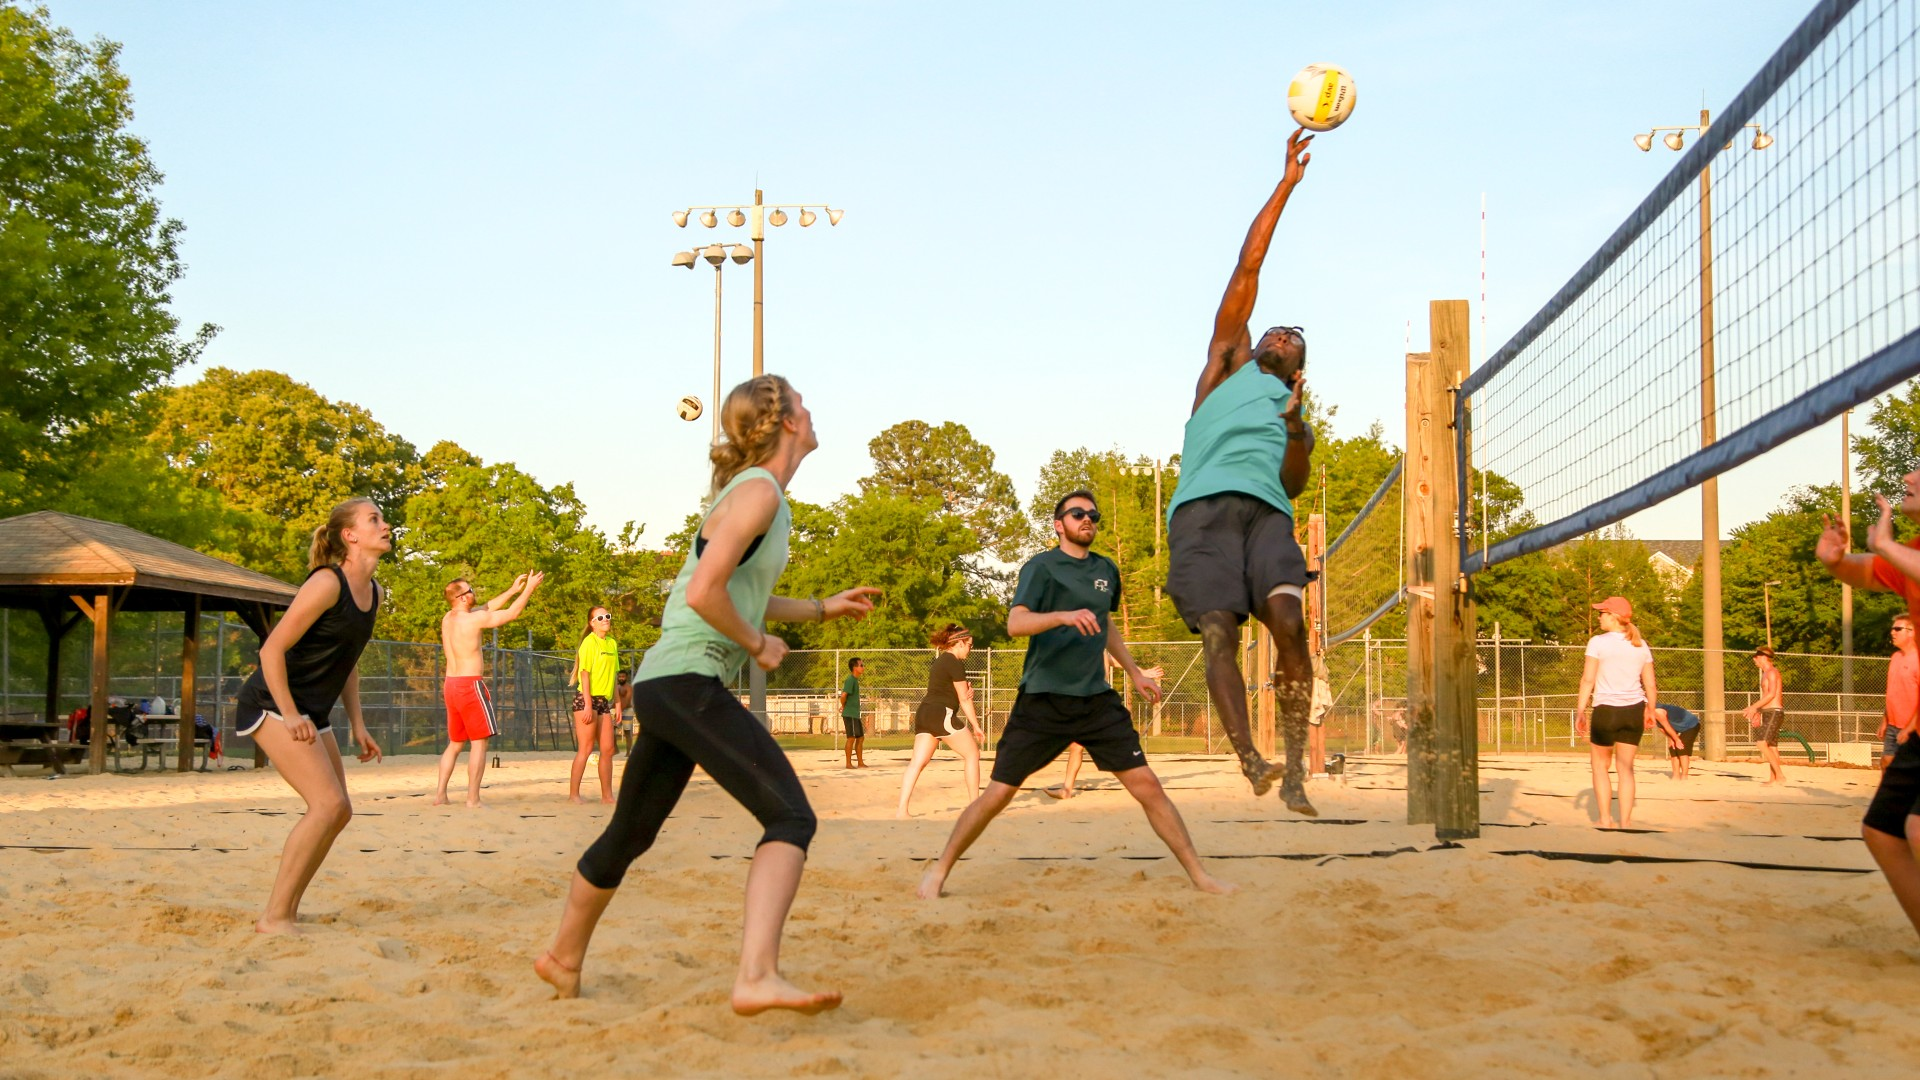 A group of young adults playing sand volleyball at Jaycee Park